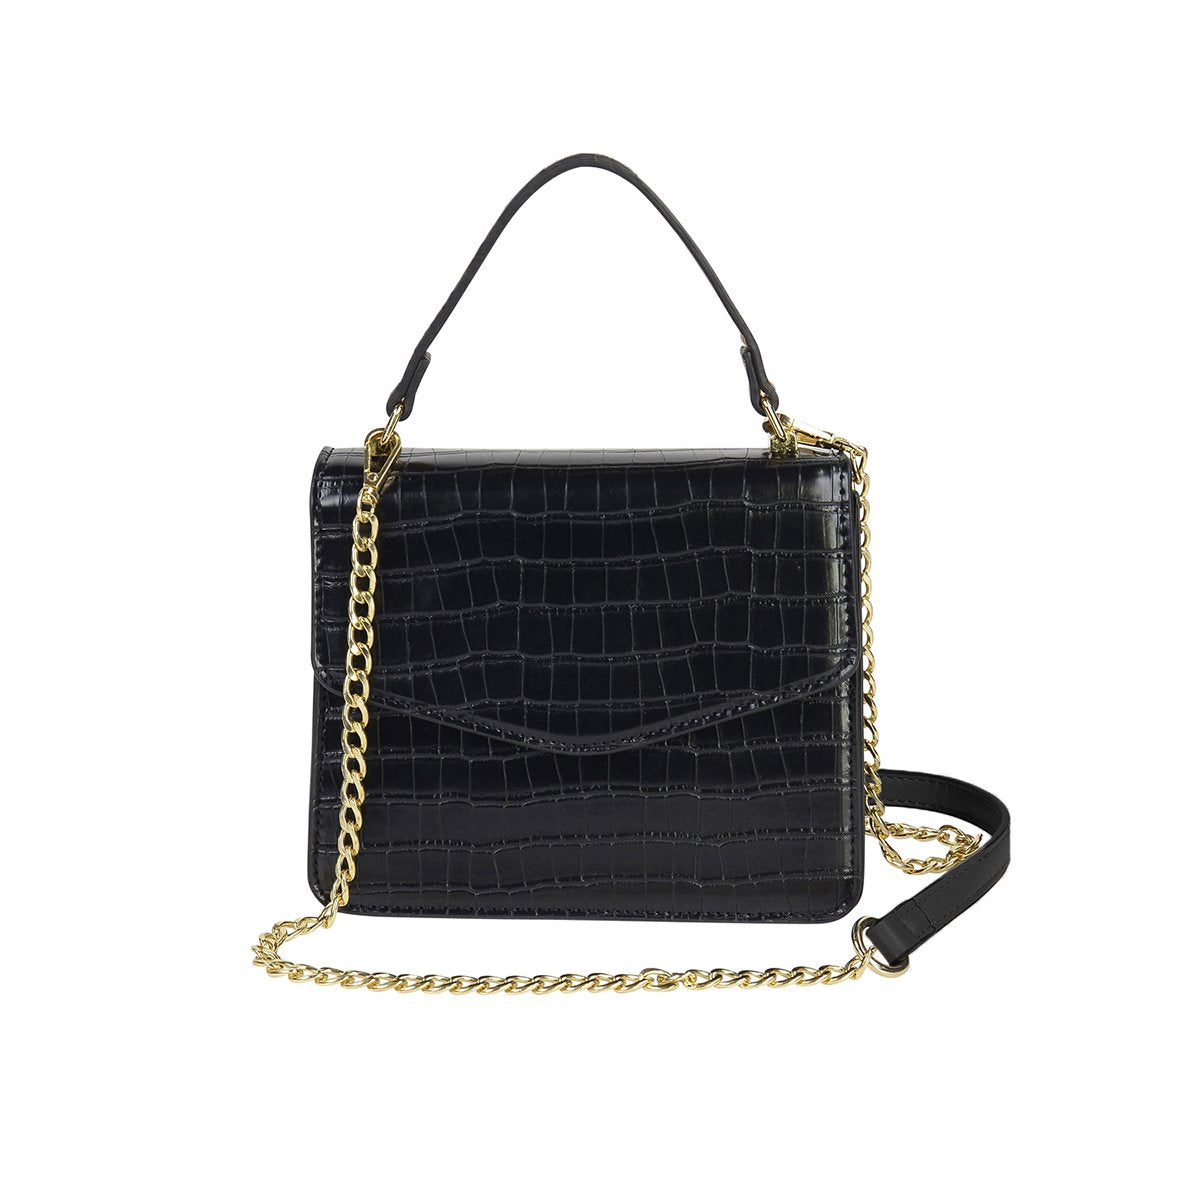 Small Square Bag - Black